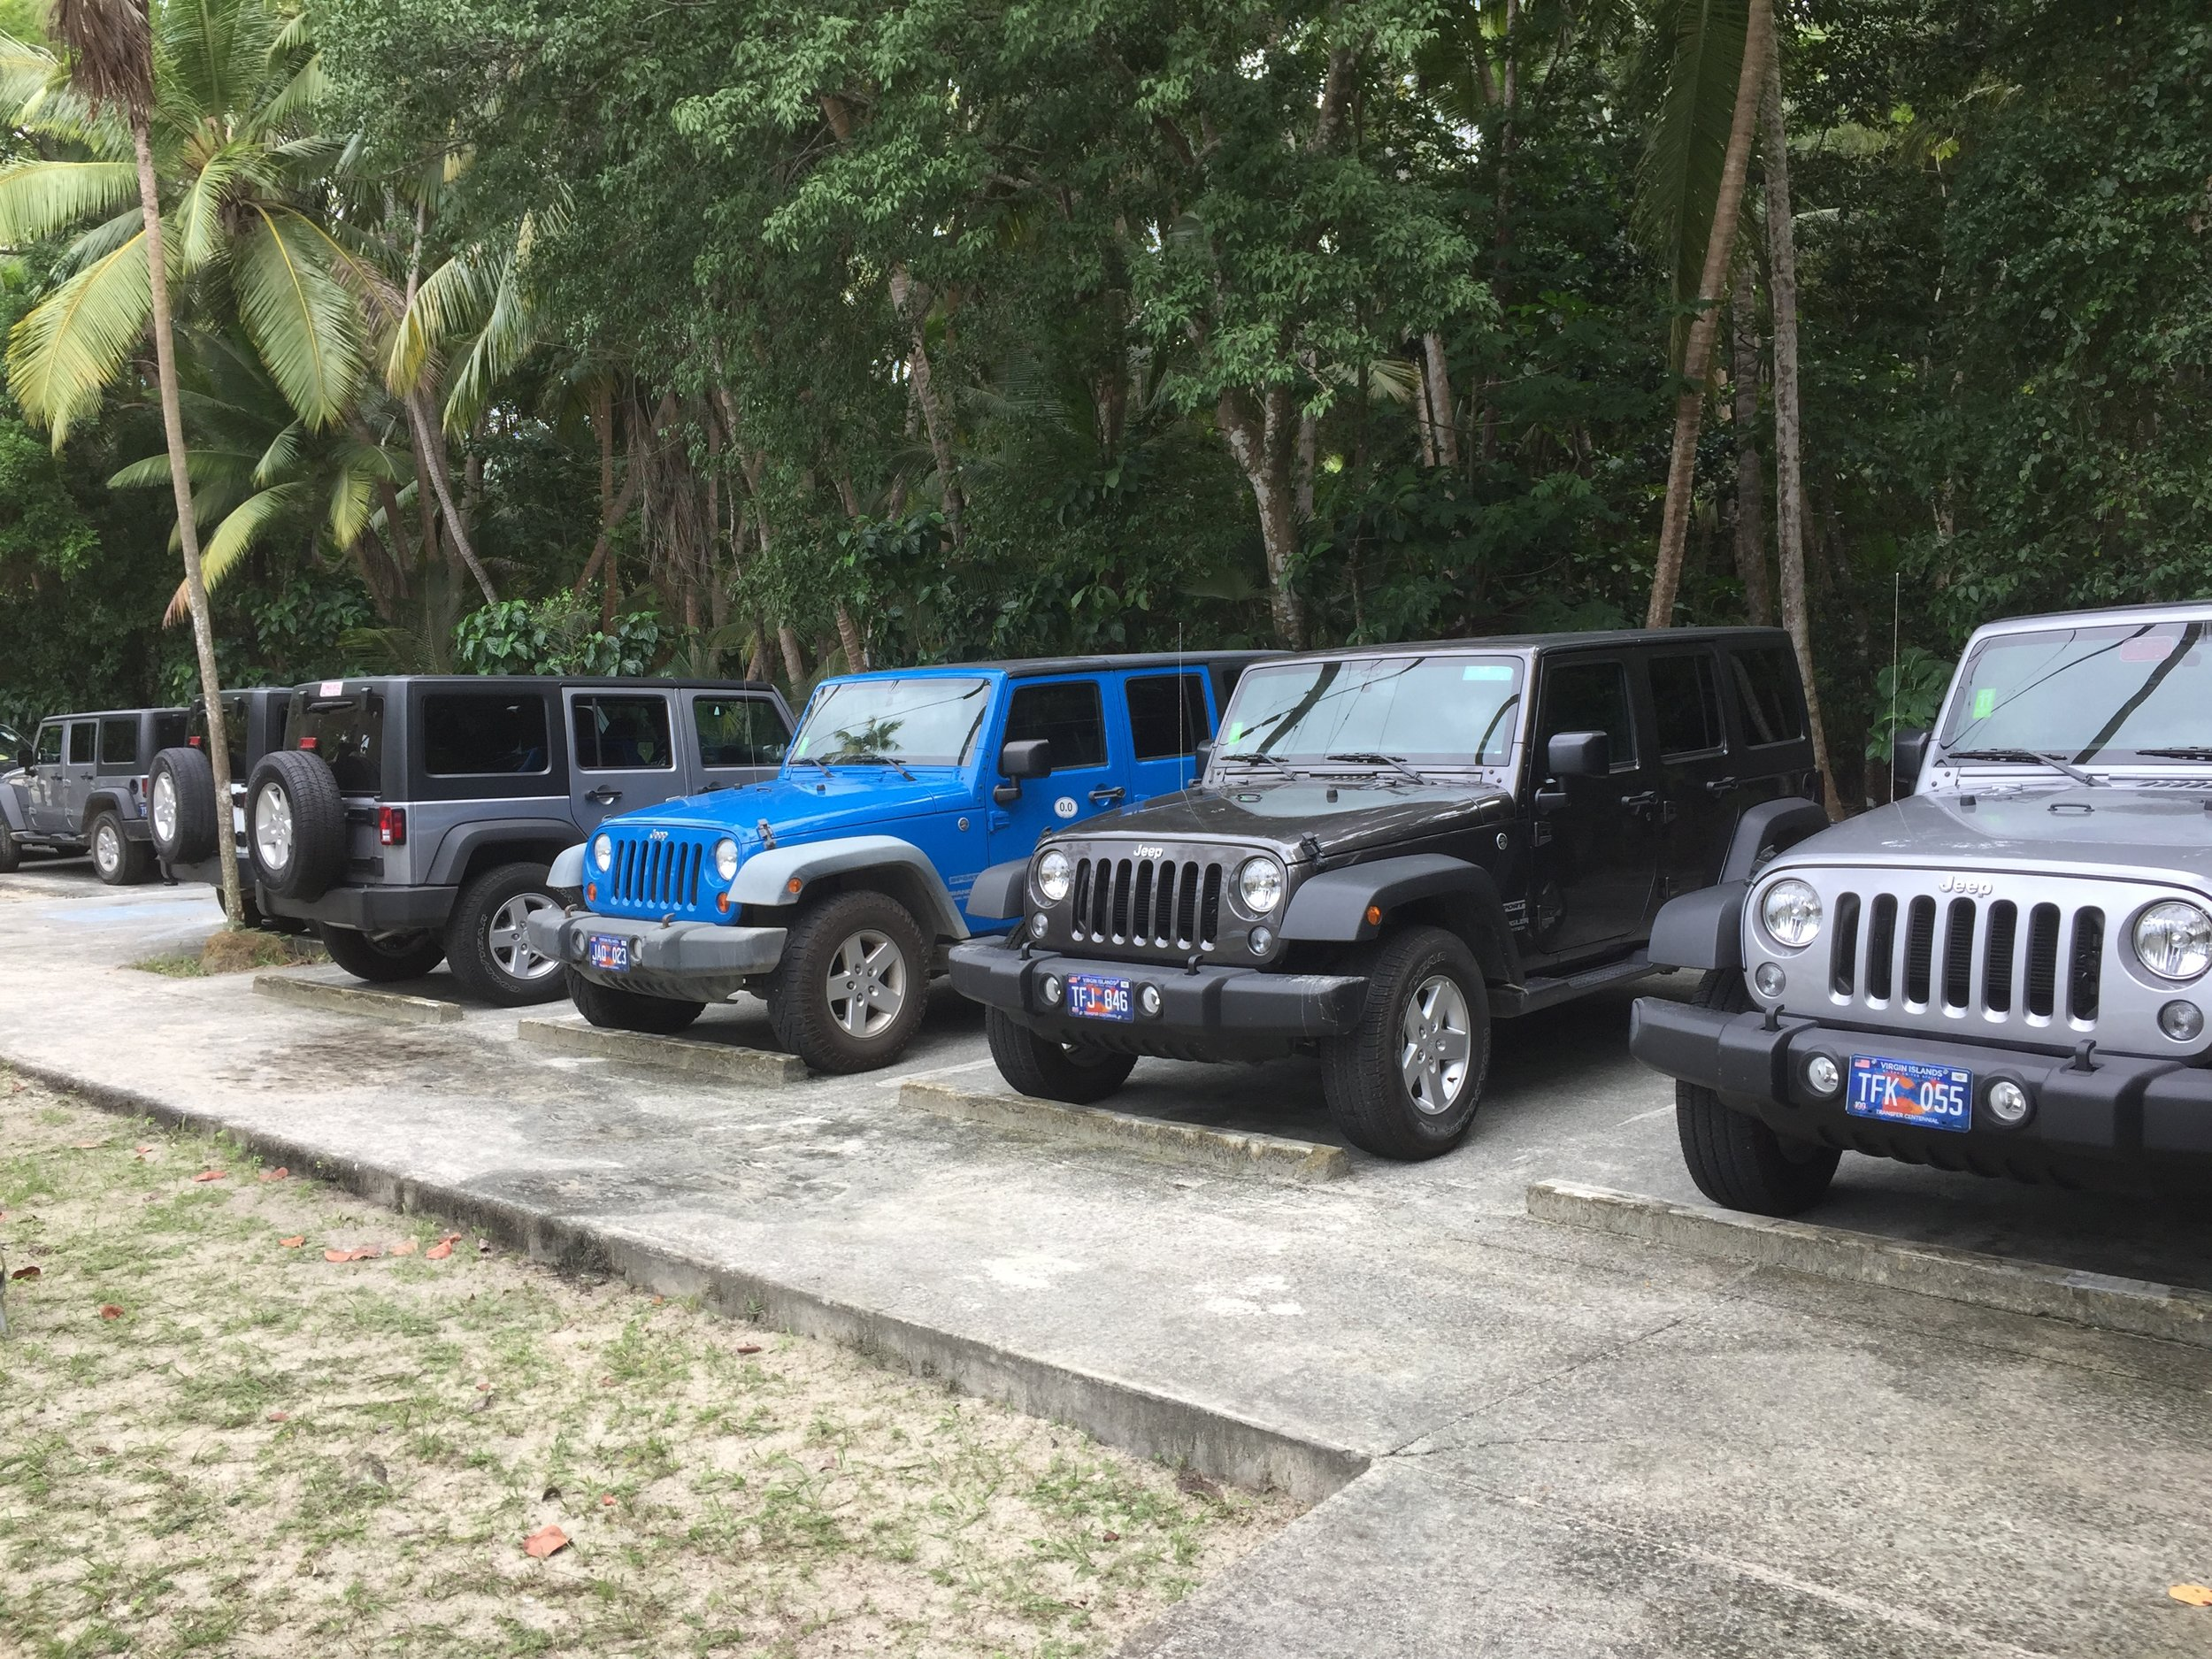 A row of Jeeps. Ours is second from the right.